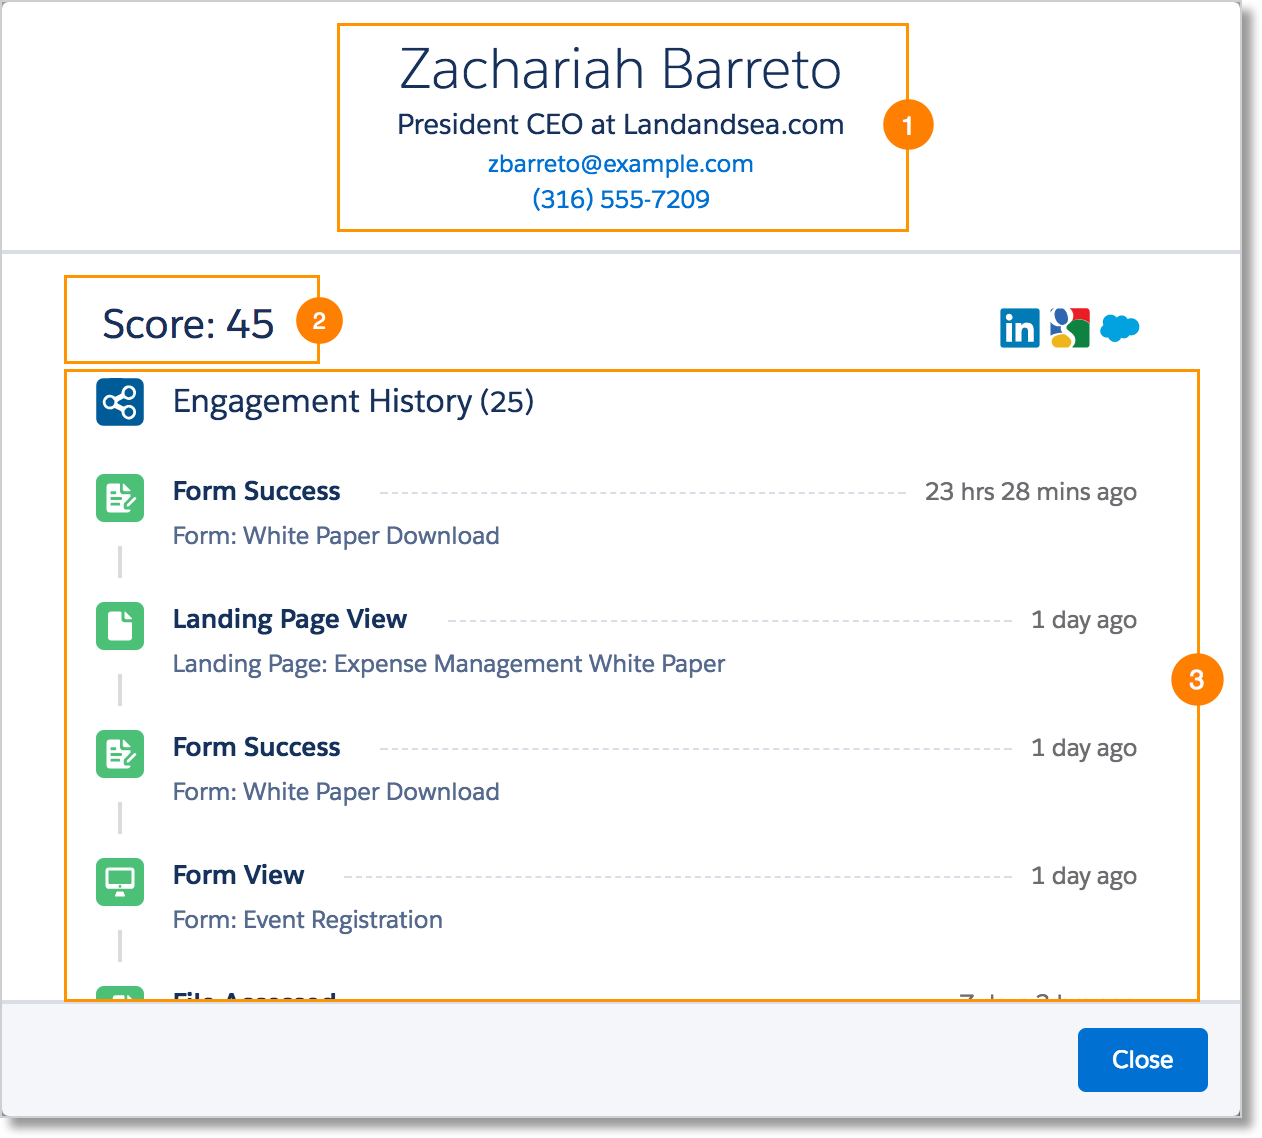 Prospect card displaying contact information, Pardot score, and Engagement History